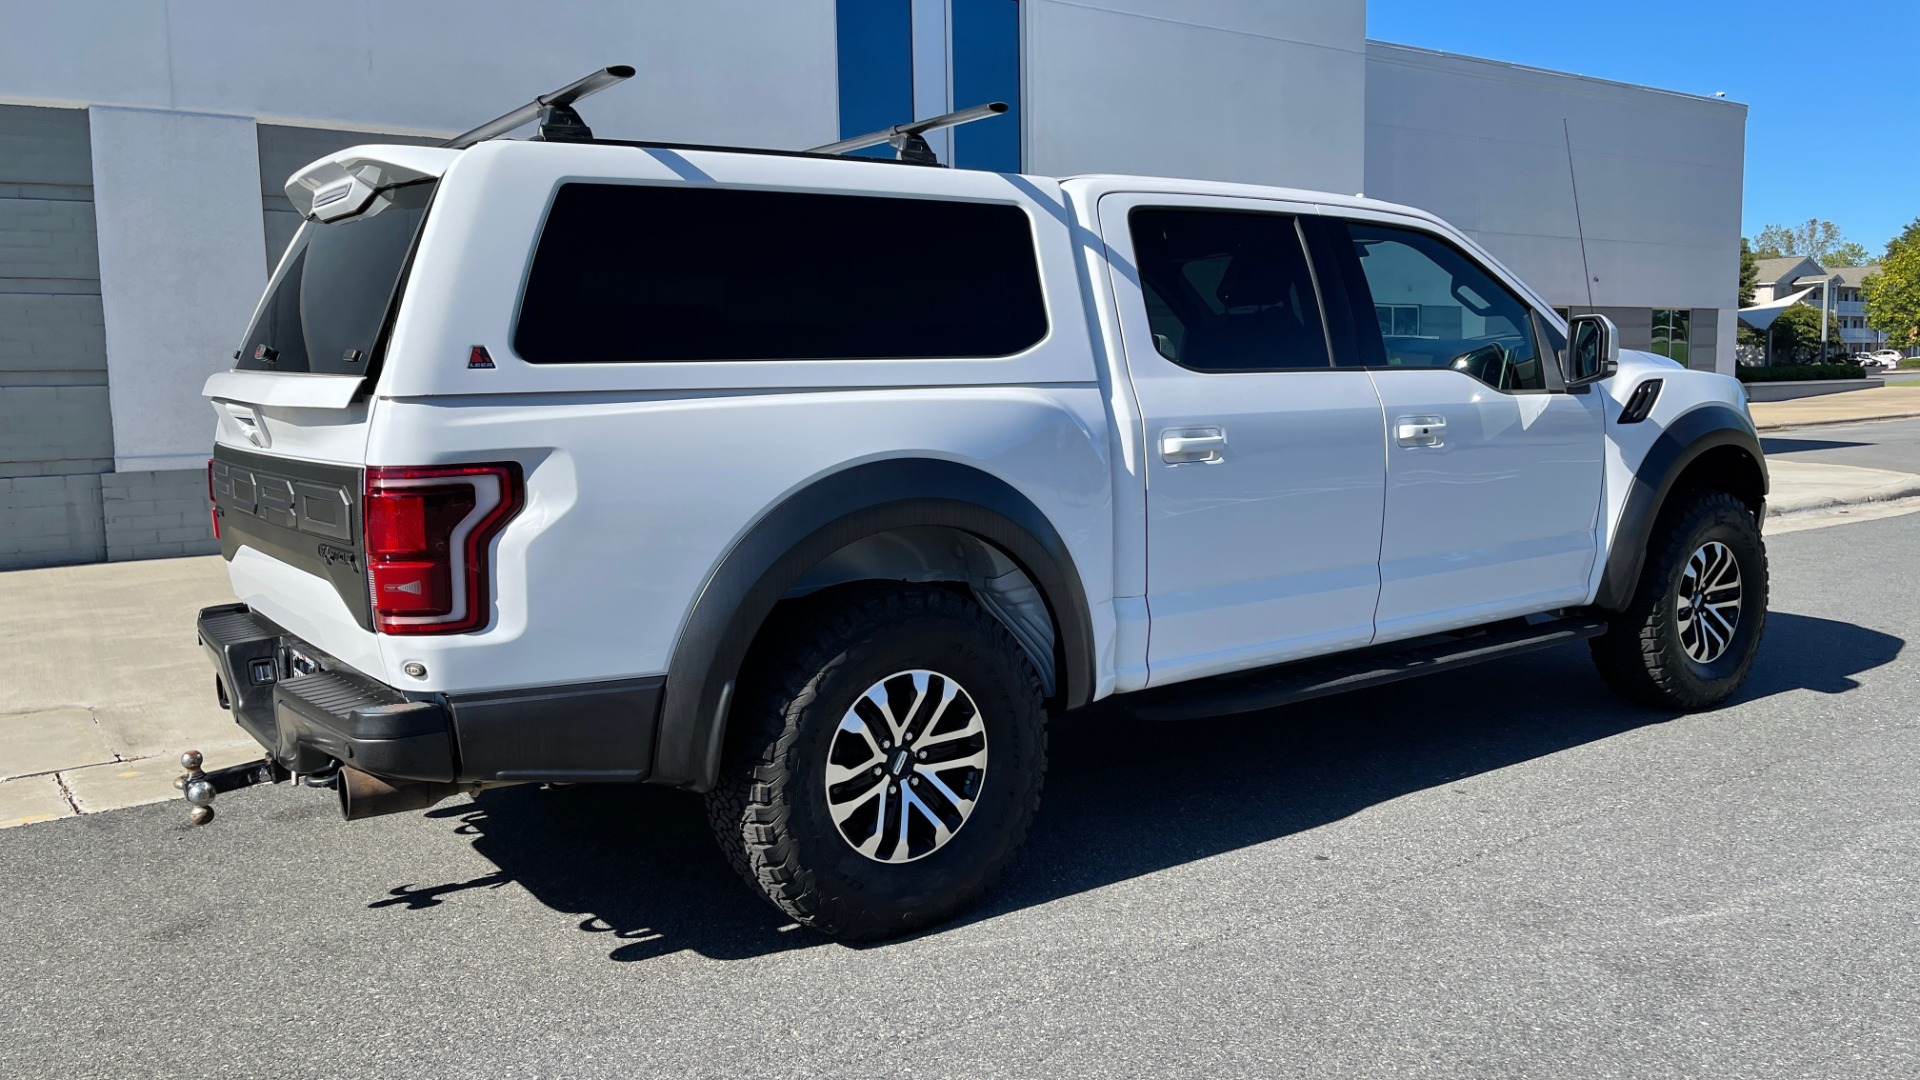 Used 2019 Ford F-150 RAPTOR 4X4 SUPERCREW / NAV / BLIS / B&O SND / REMOTE START / REARVIEW for sale $65,999 at Formula Imports in Charlotte NC 28227 2